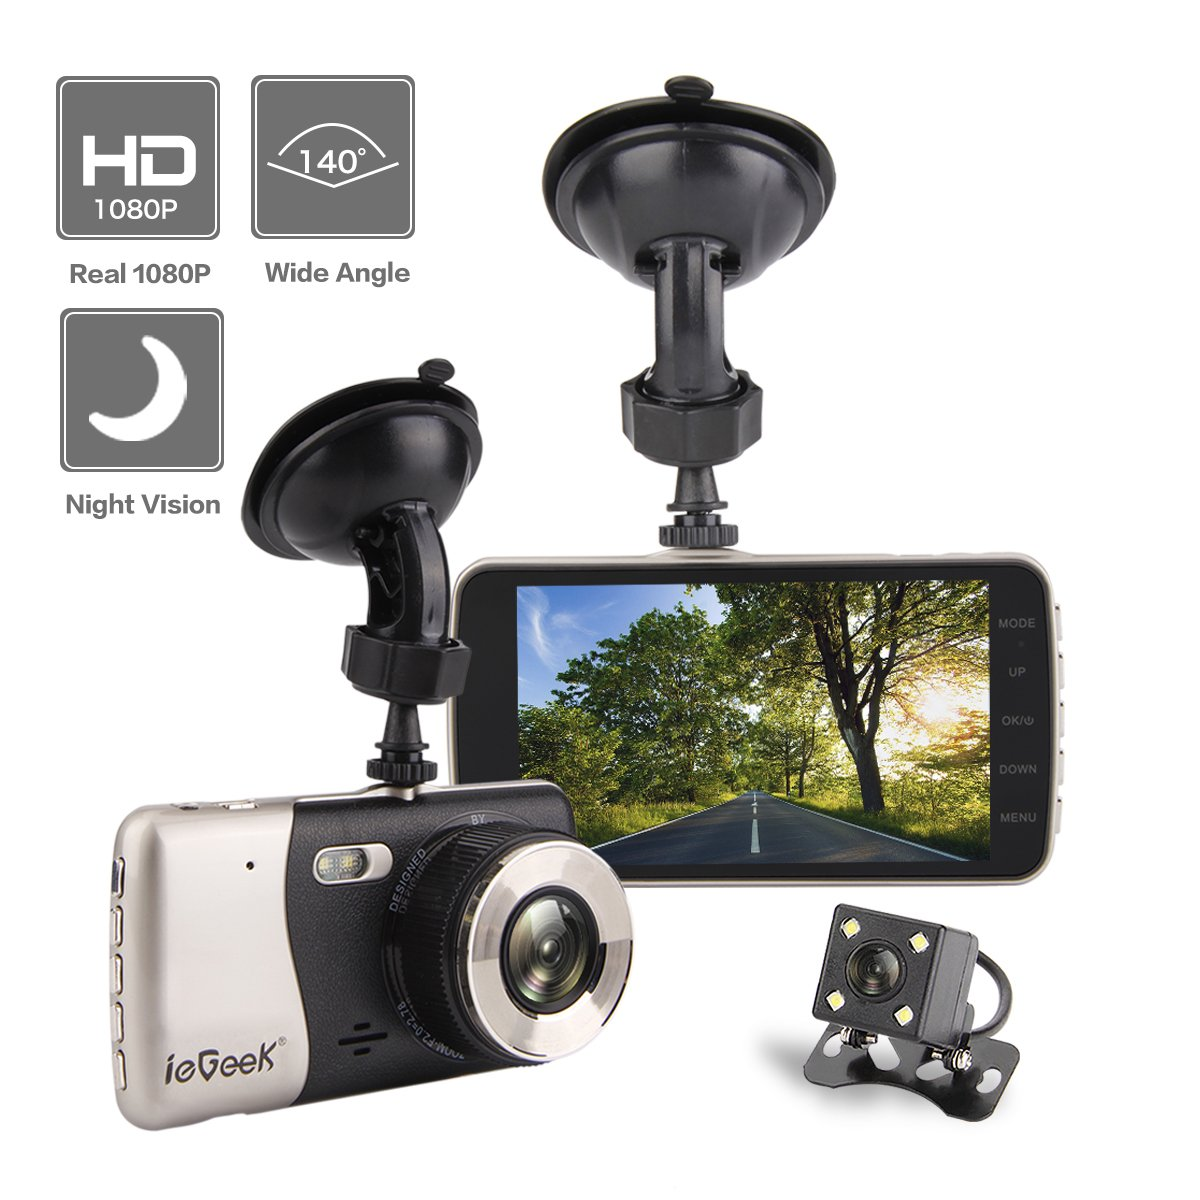 """ieGeek Car Camera FHD 1080P Night Vision 140°Wide Angle Dual Lens 4"""" TFT Screen DVR with WDR Loop Recording G-Sensor Motion Detection Parking Assistance"""